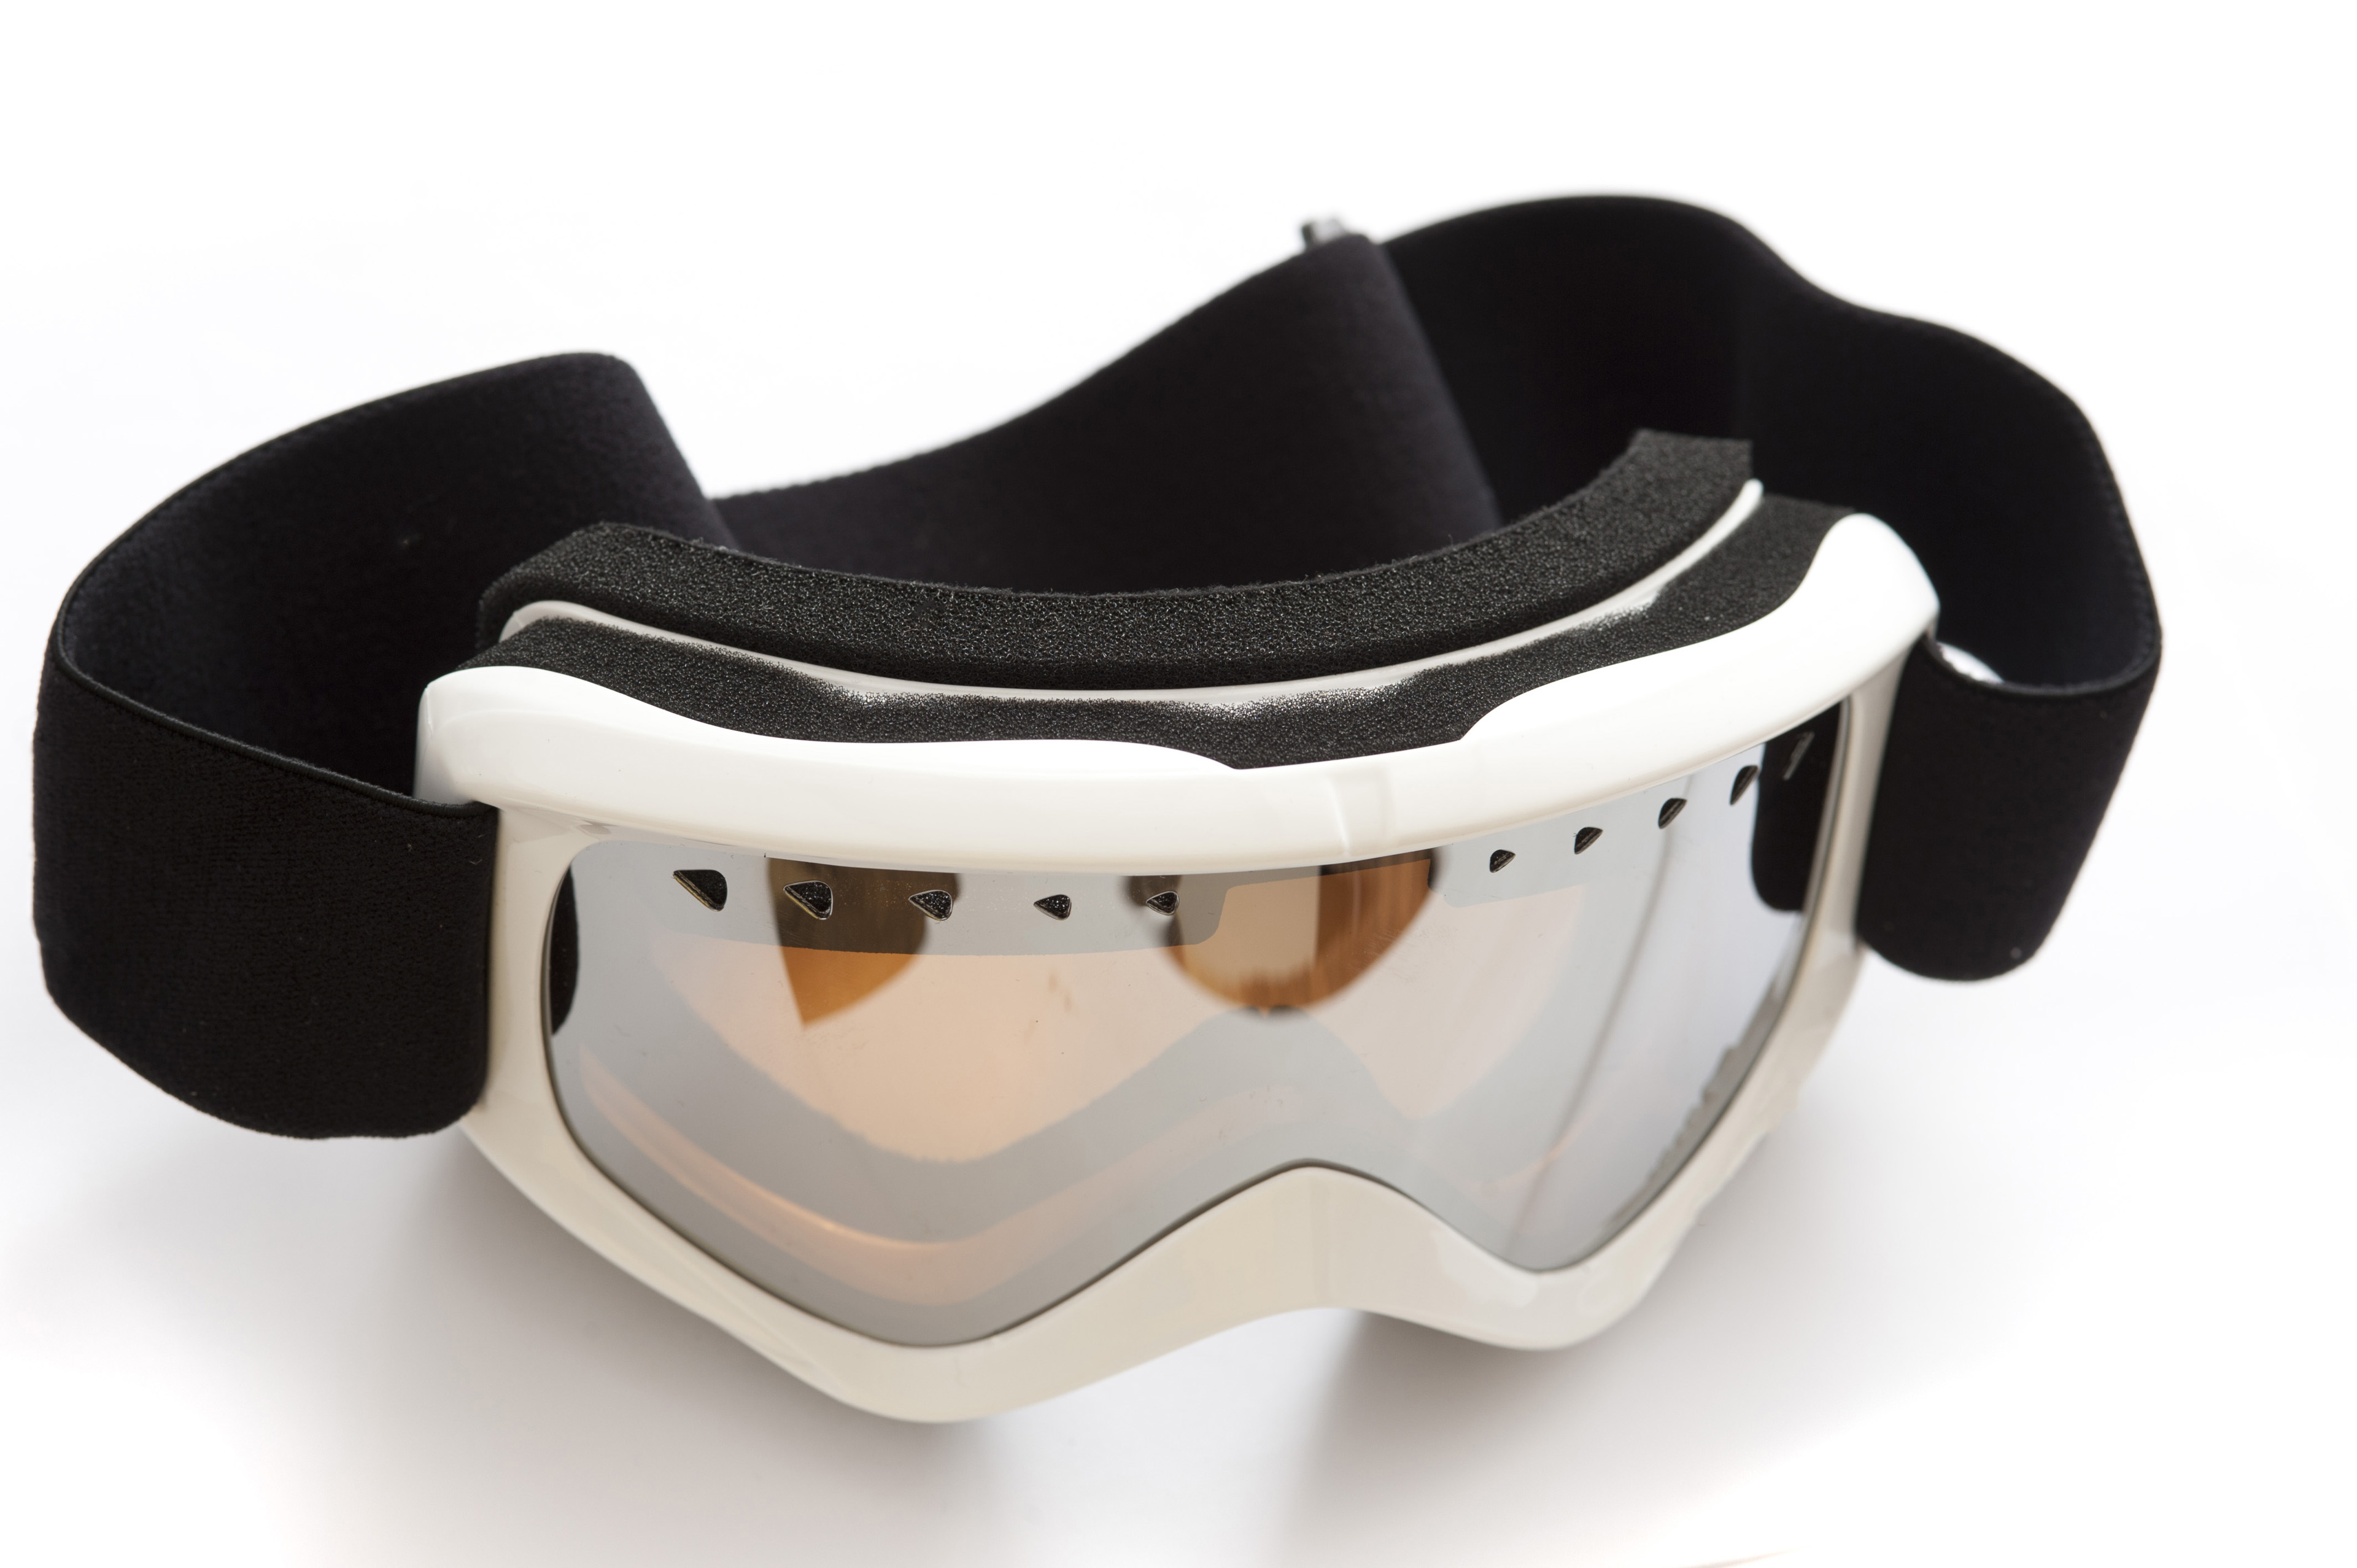 Pair of tinted winter goggles for skiing or snowboarding to protect the eyes from injury and the reflection off the snow